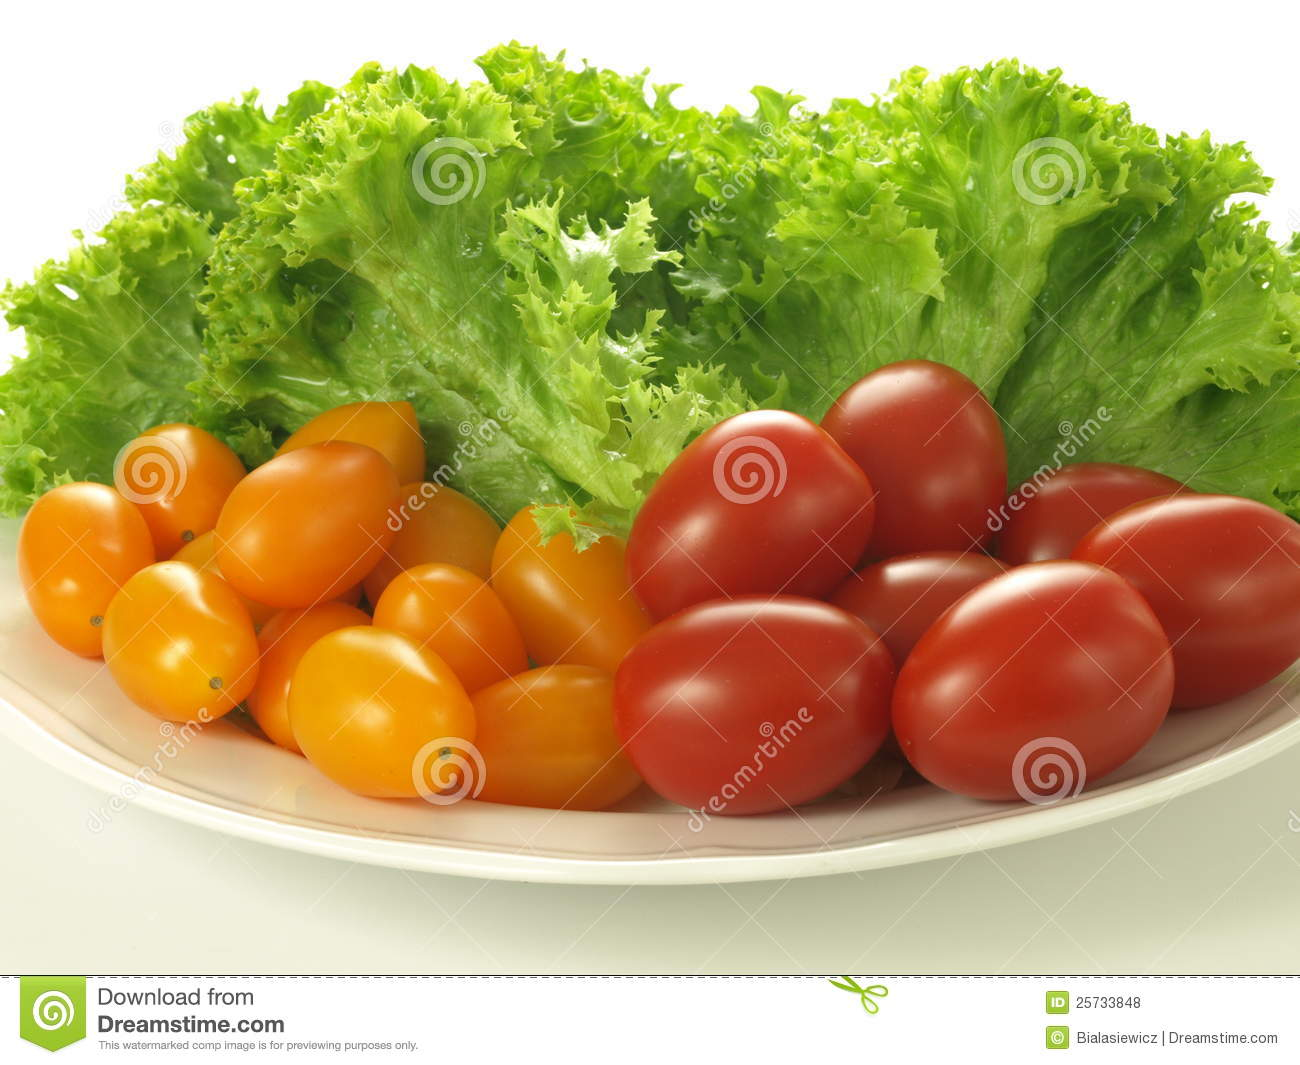 Plate with tomatoes and salad